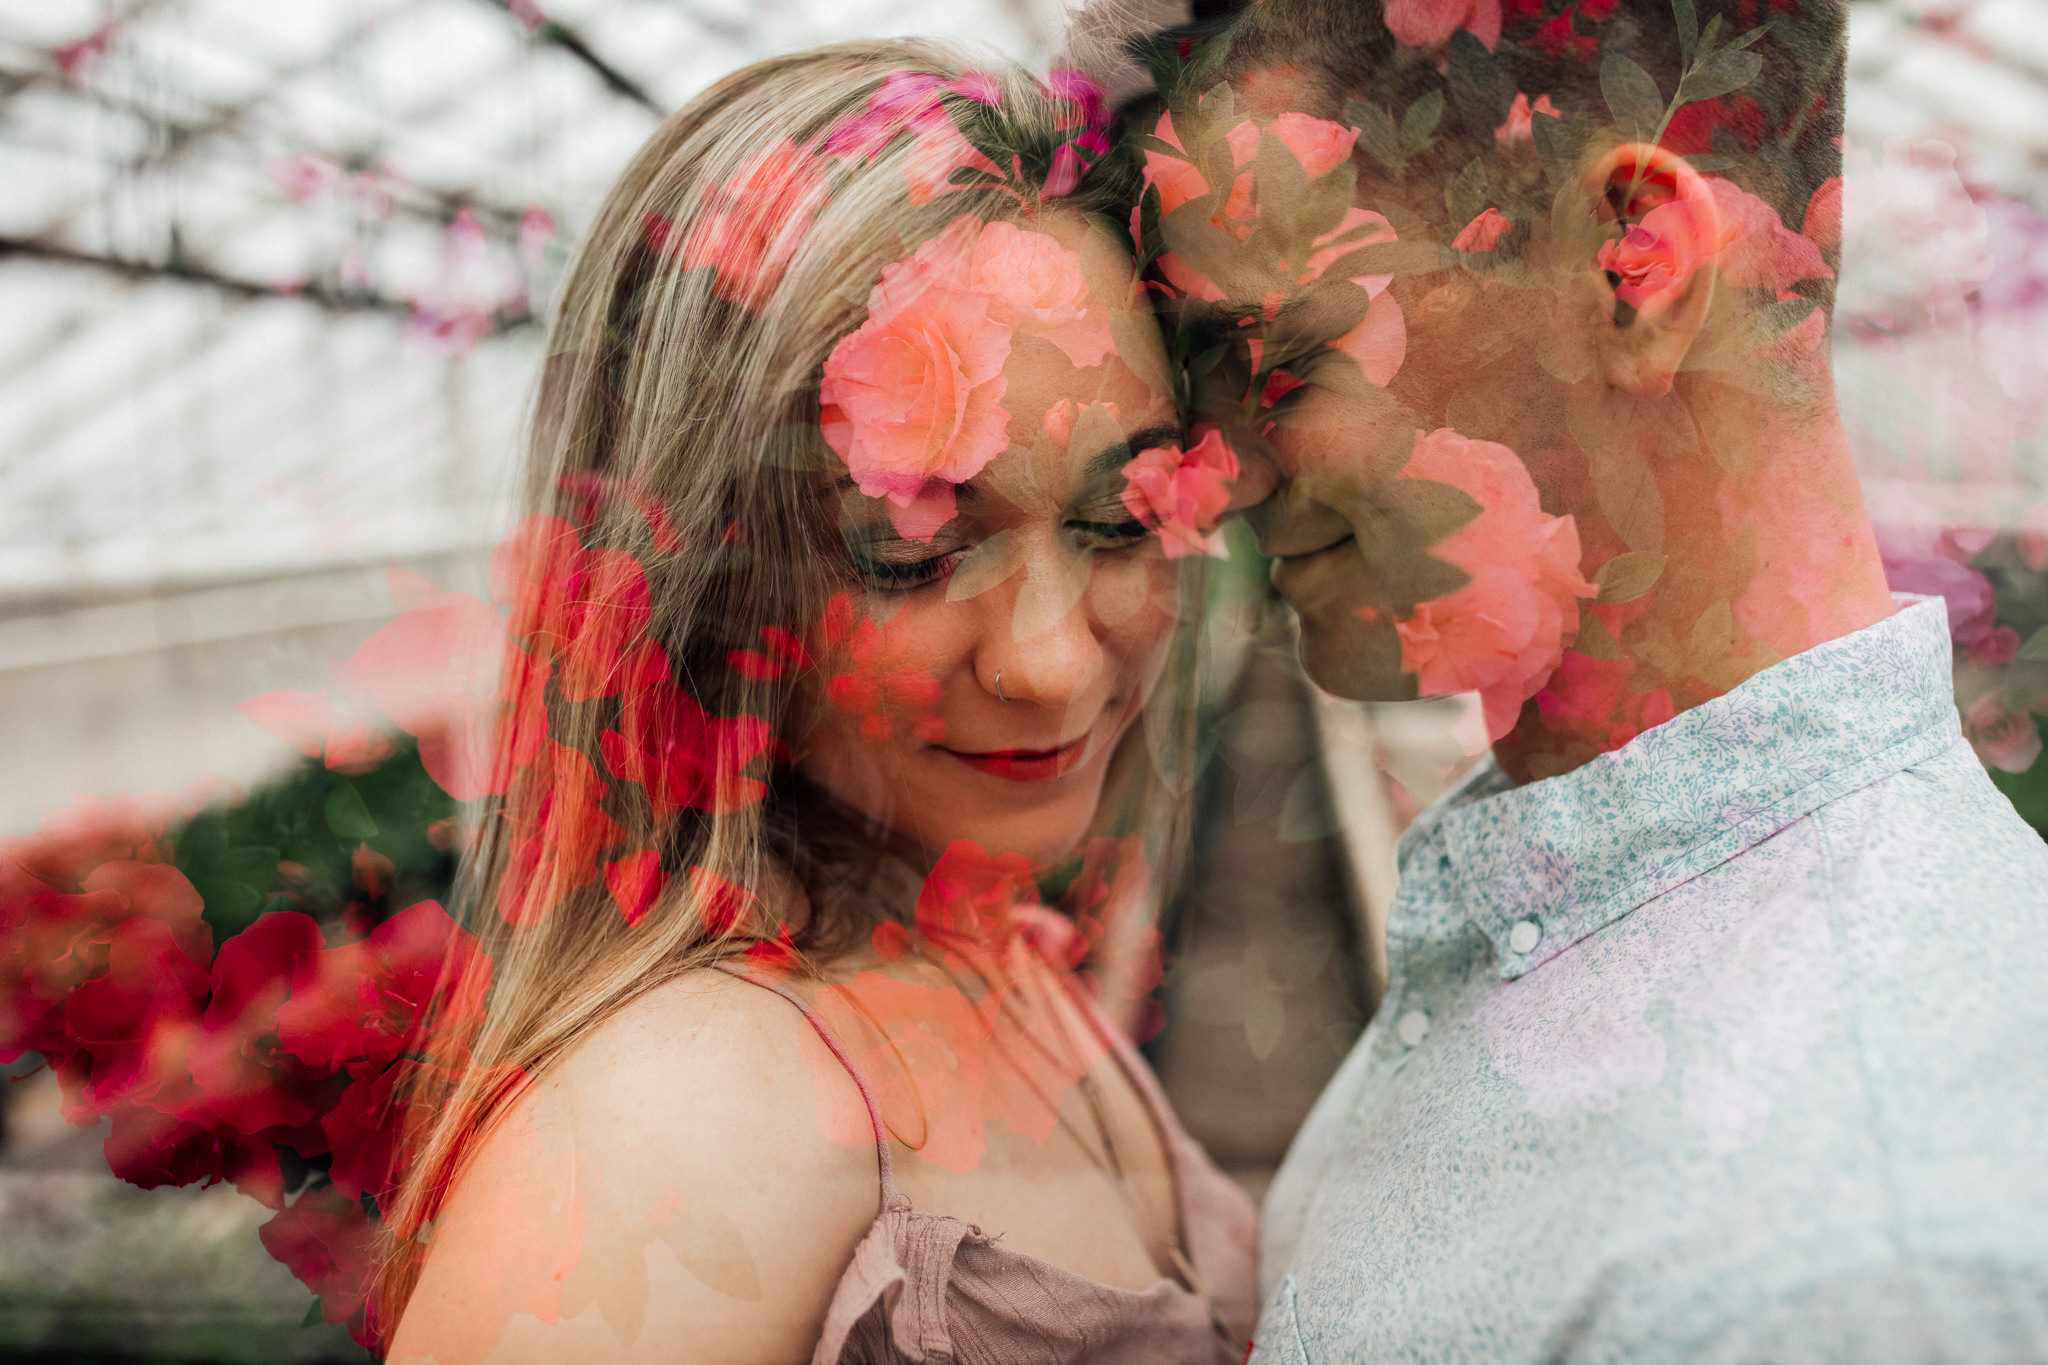 memphis-engagement-photographer-thewarmtharoundyou-greenhouse-engagement-pictures (89 of 118).jpg